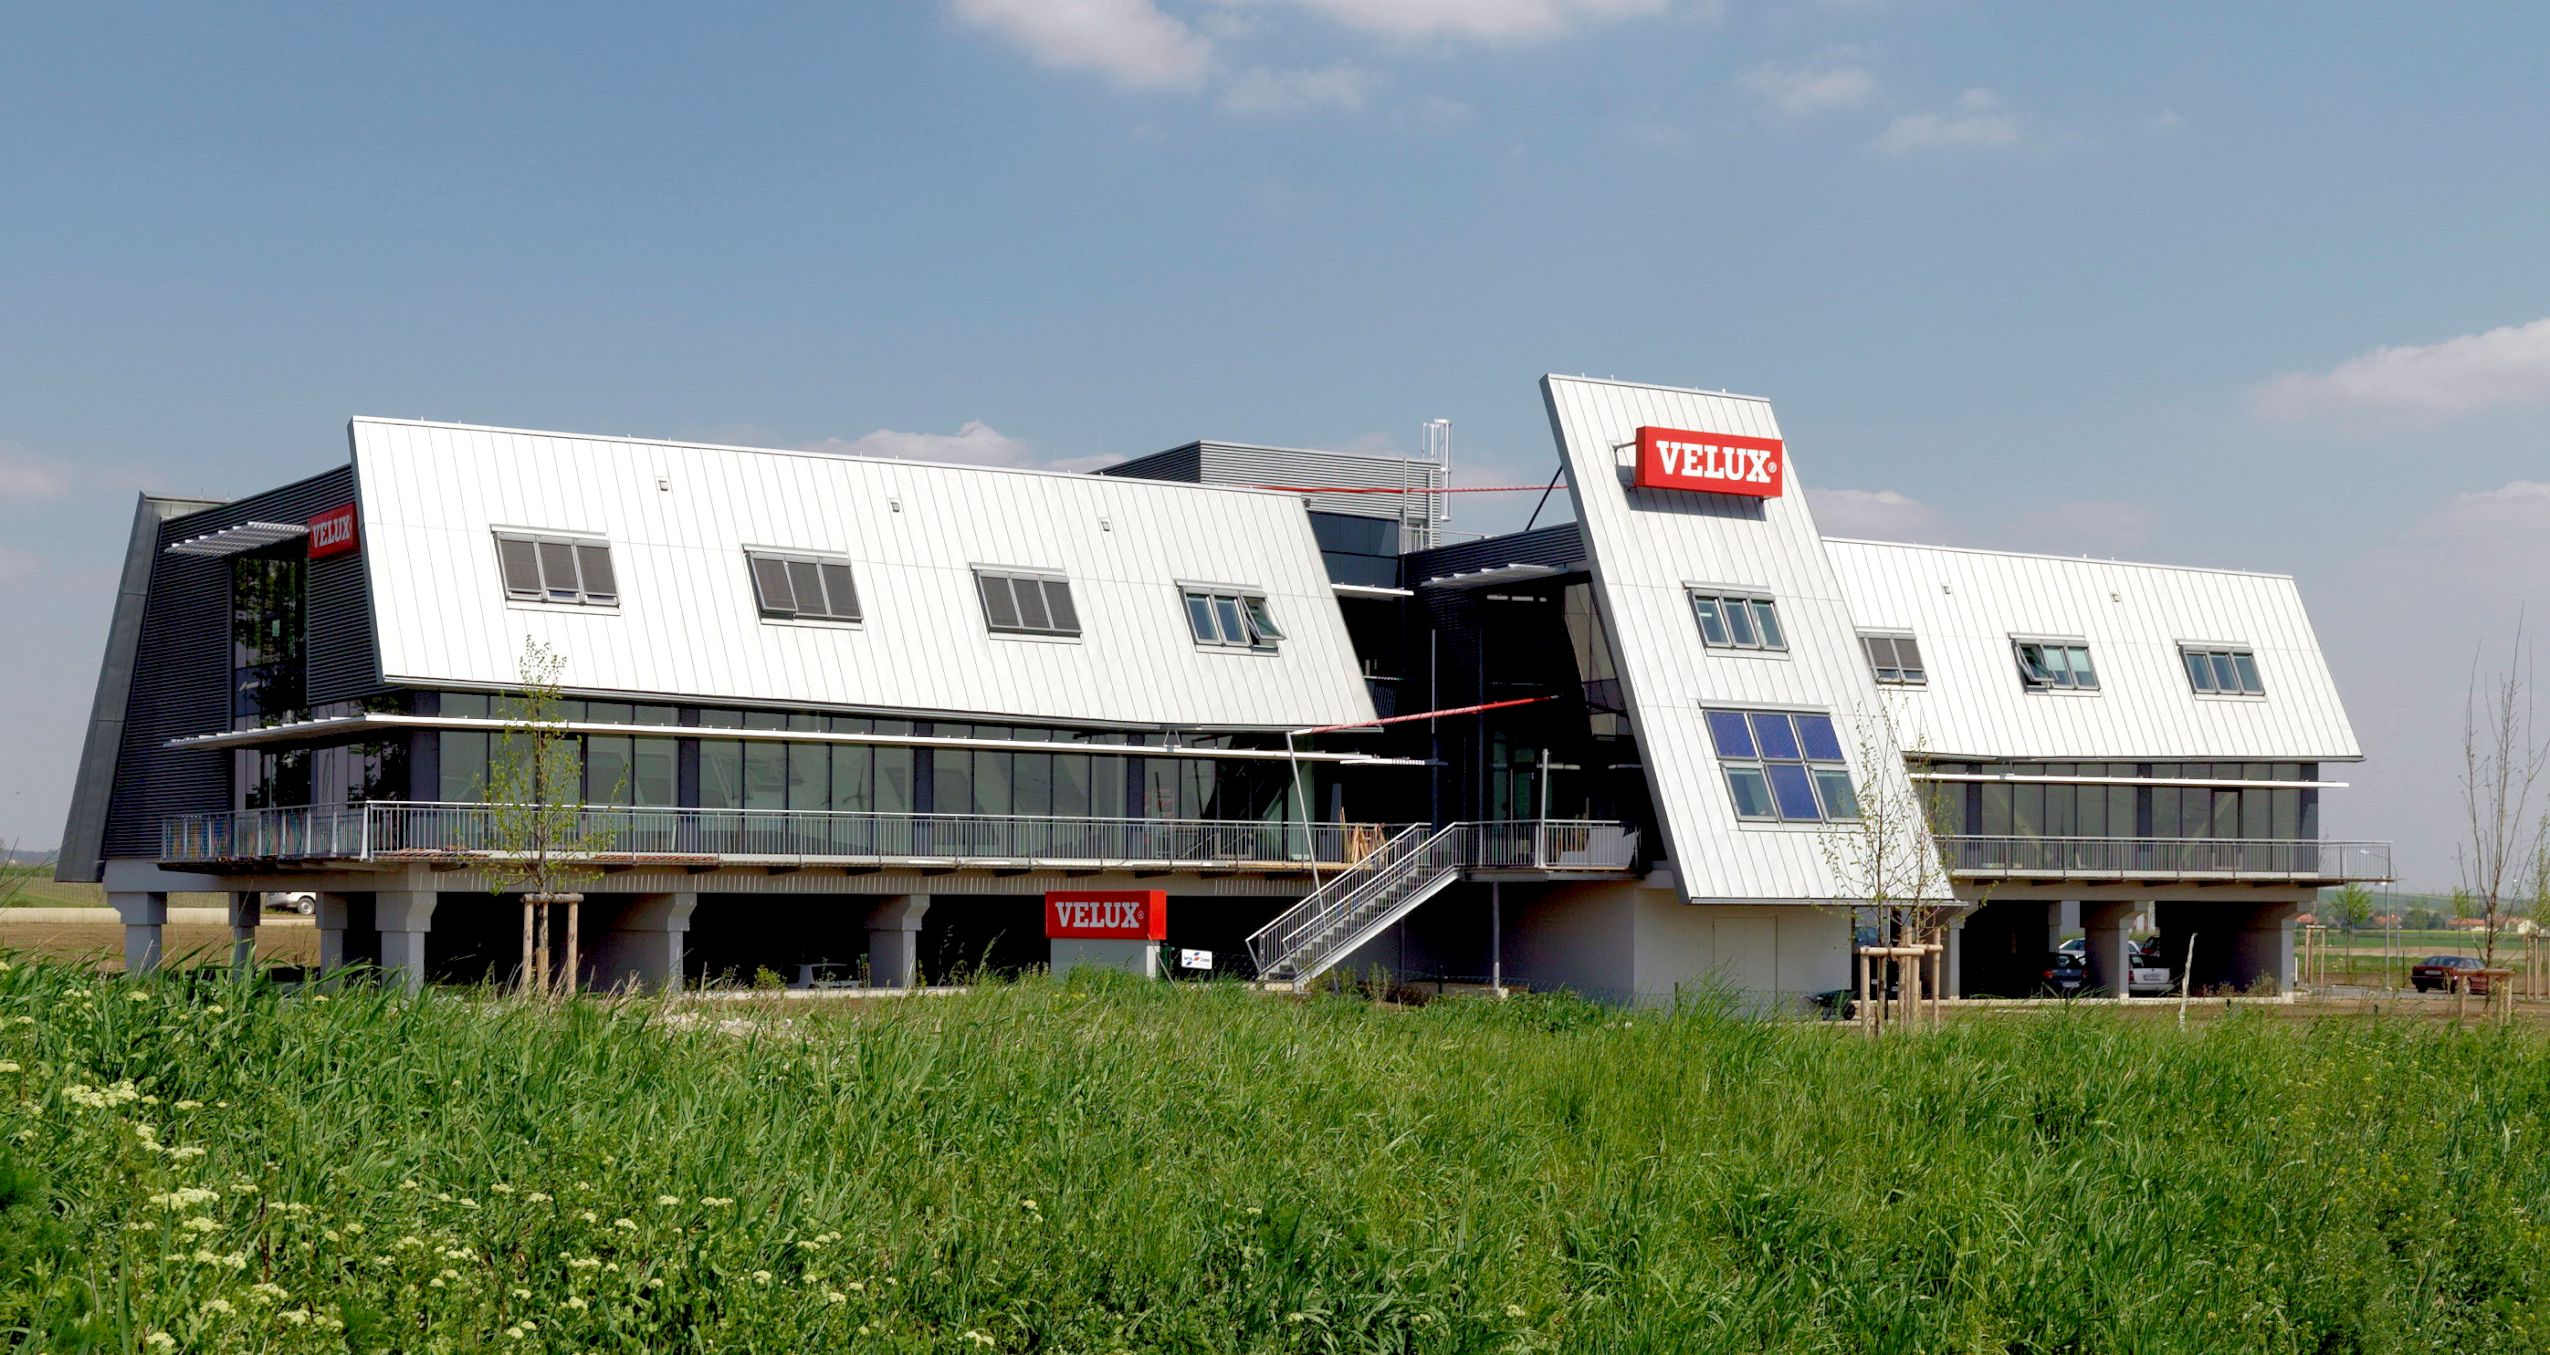 Schöck Isokorb proves ideal for Velux Headquarters